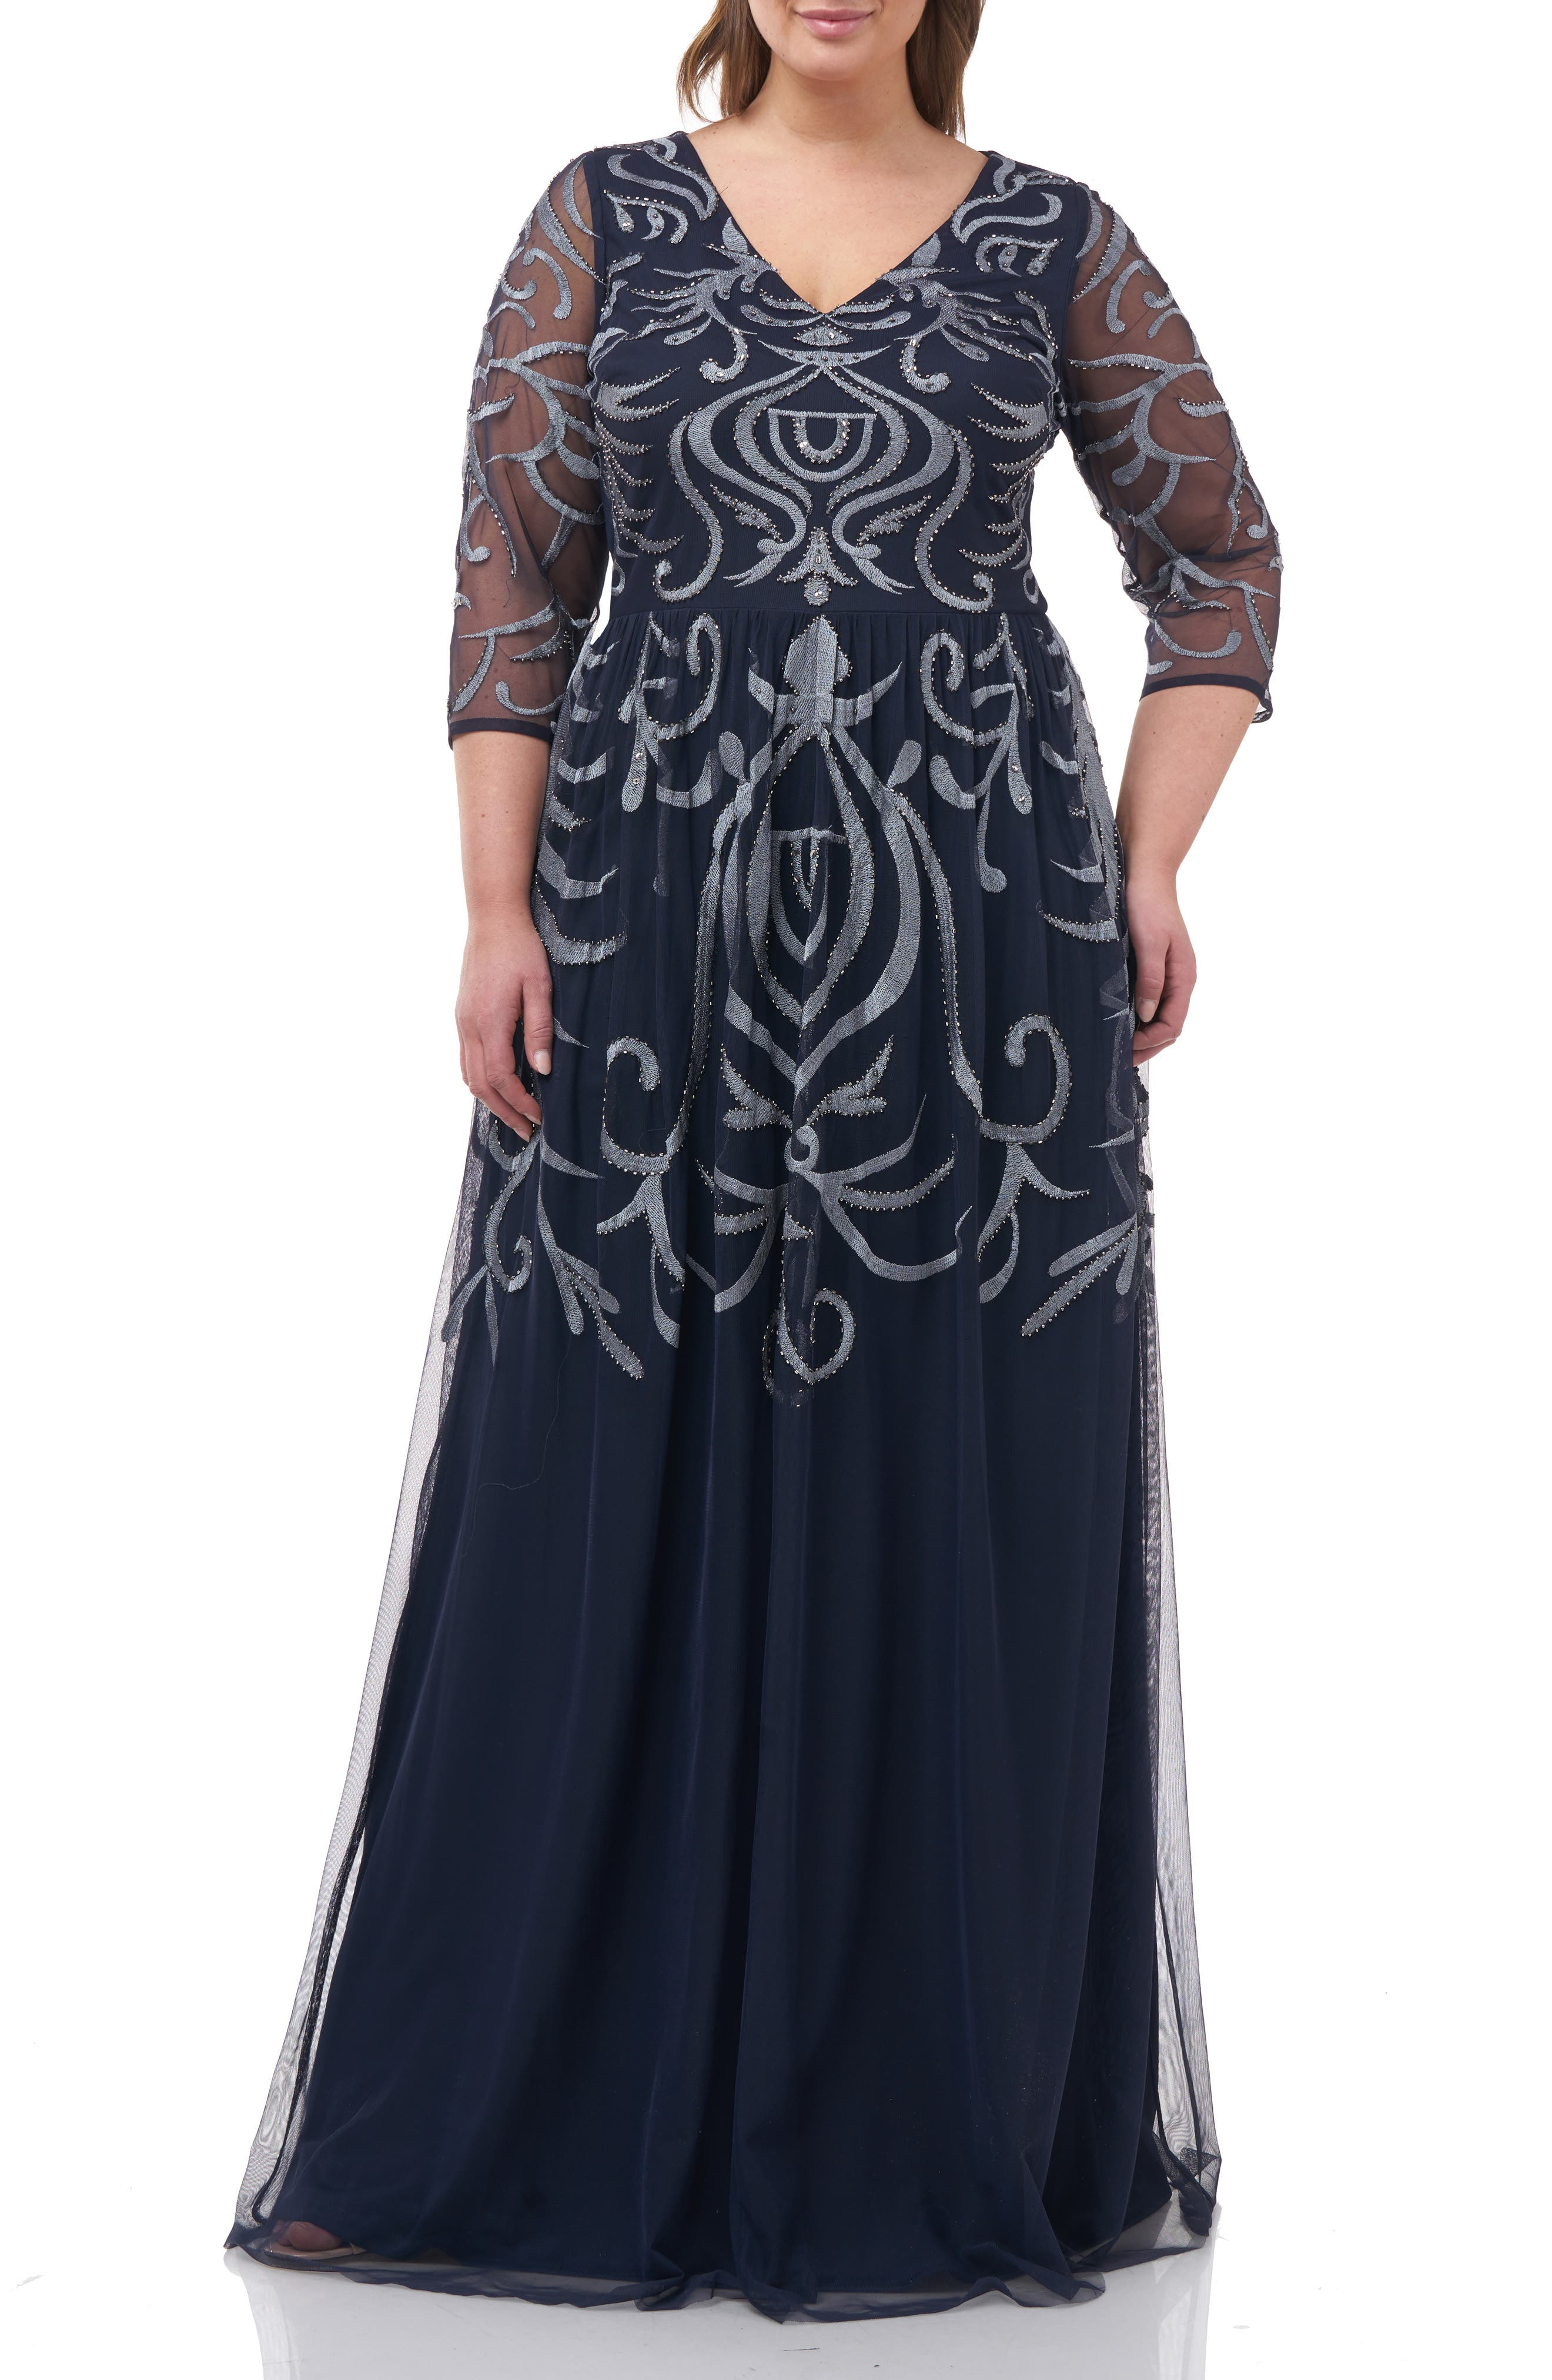 Victorian Plus Size Dresses | Edwardian Clothing, Costumes Plus Size Womens Js Collections Embellished Chiffon Gown Size 14W - Blue $129.97 AT vintagedancer.com